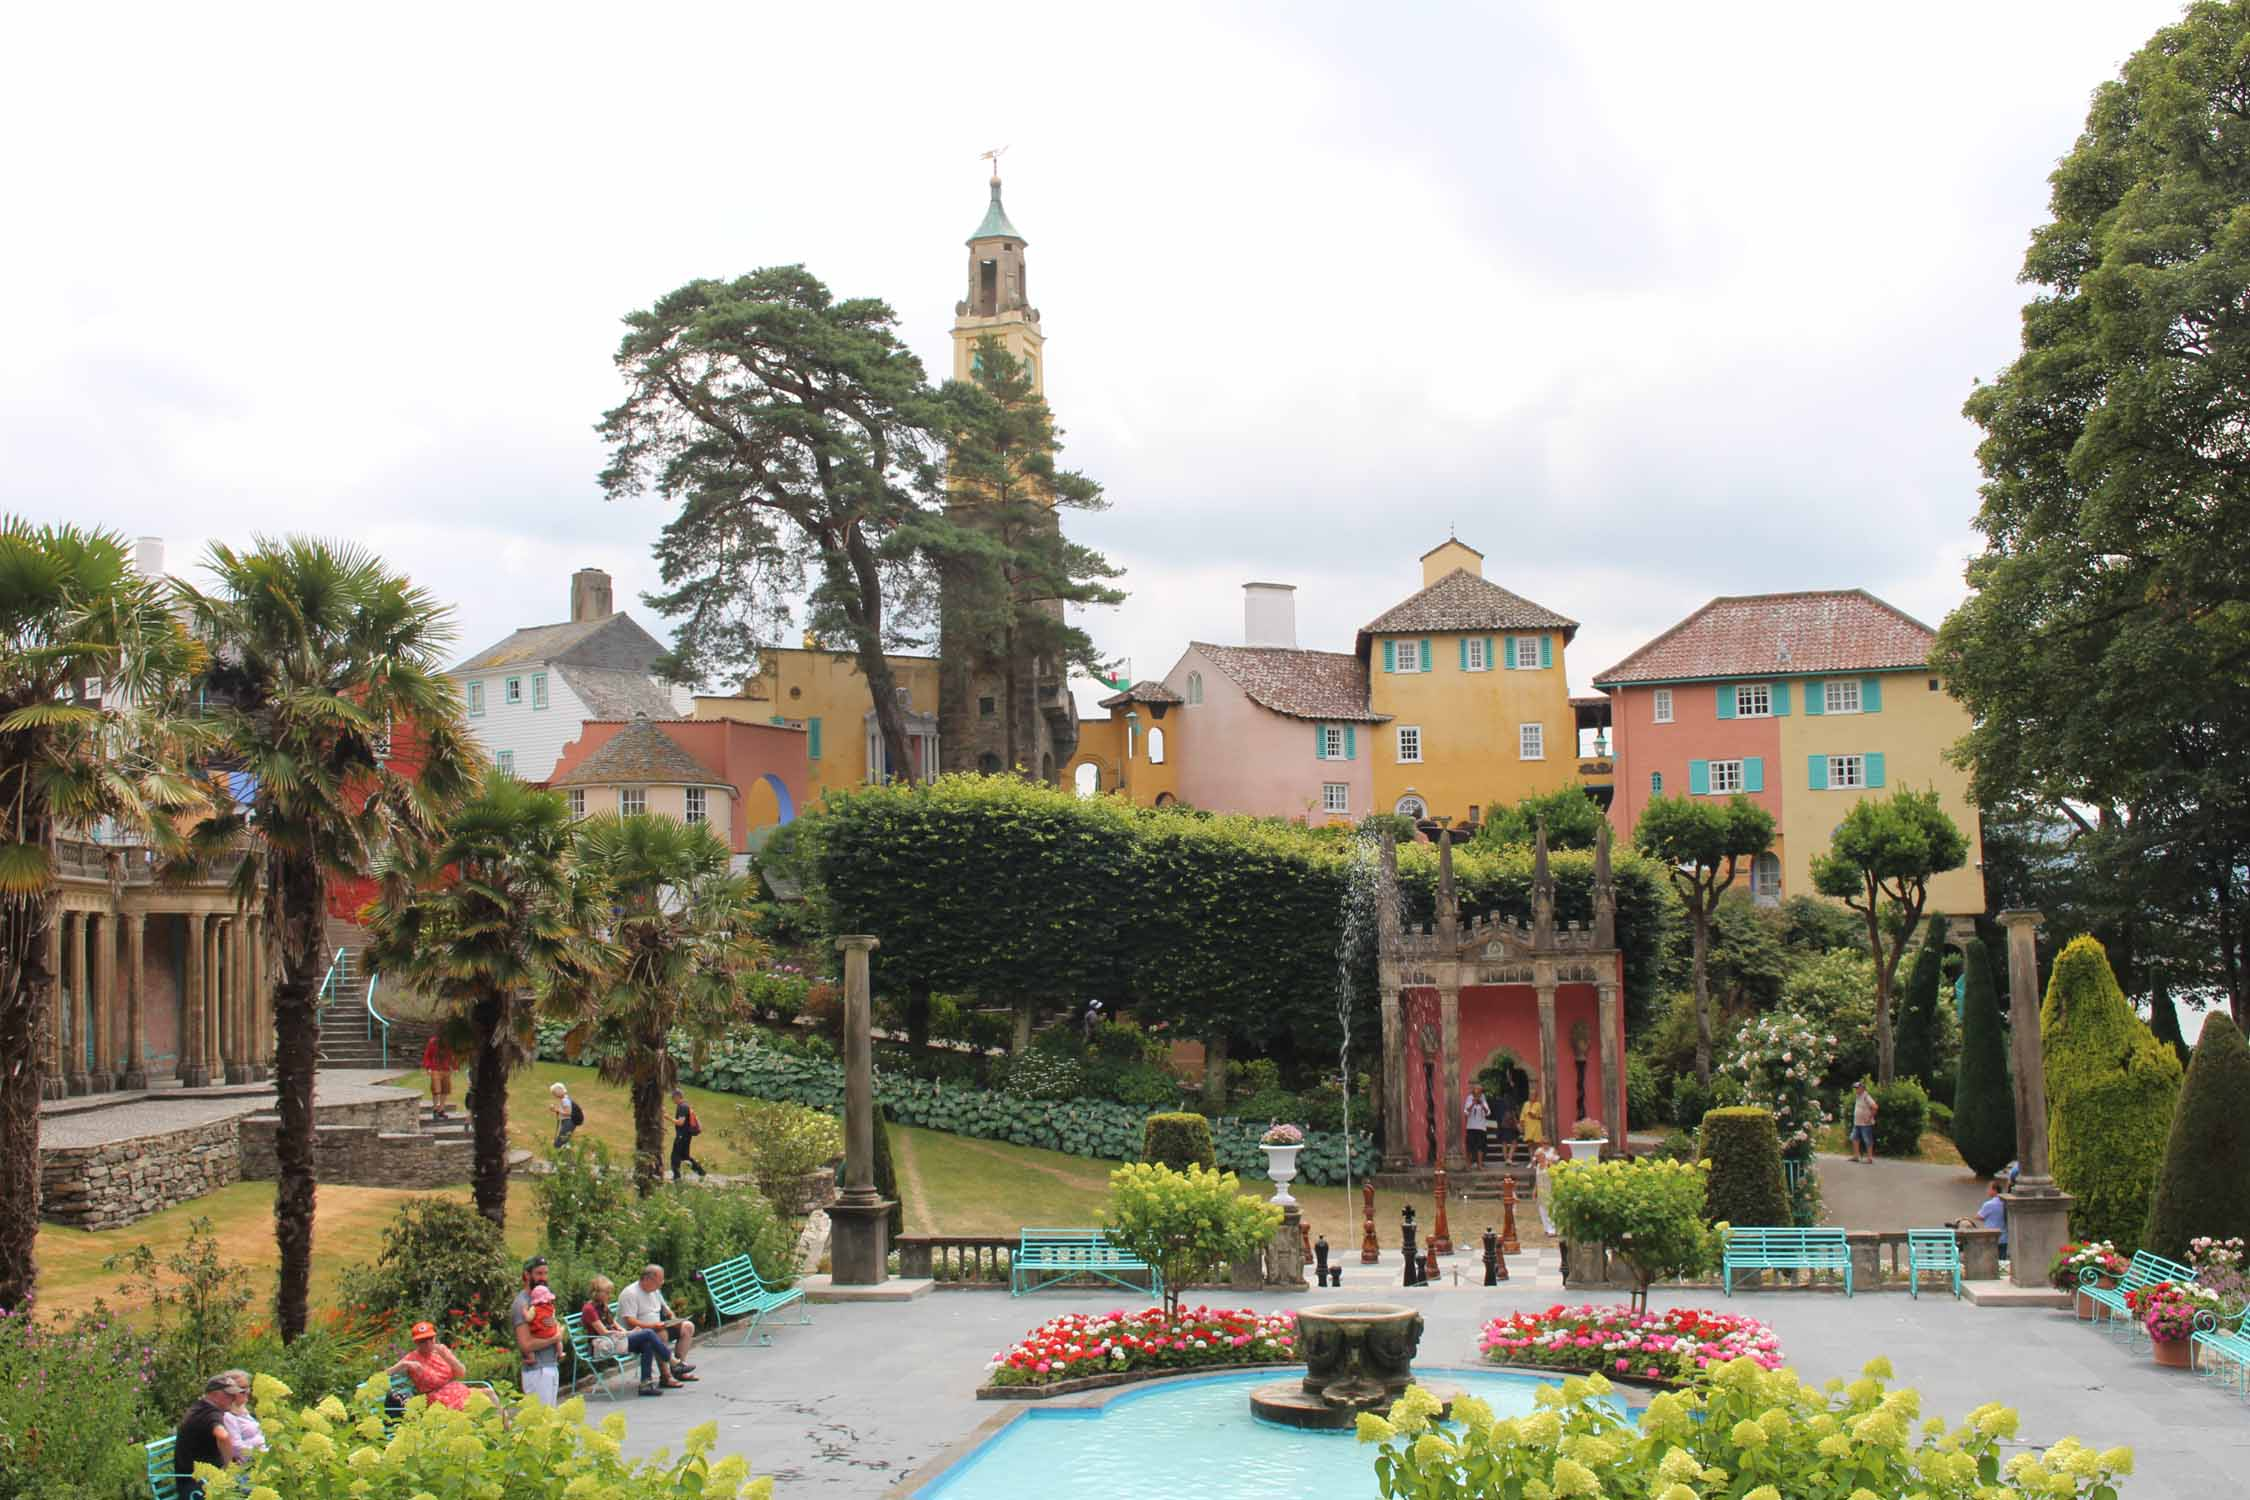 Gales, Portmeirion, plaza central